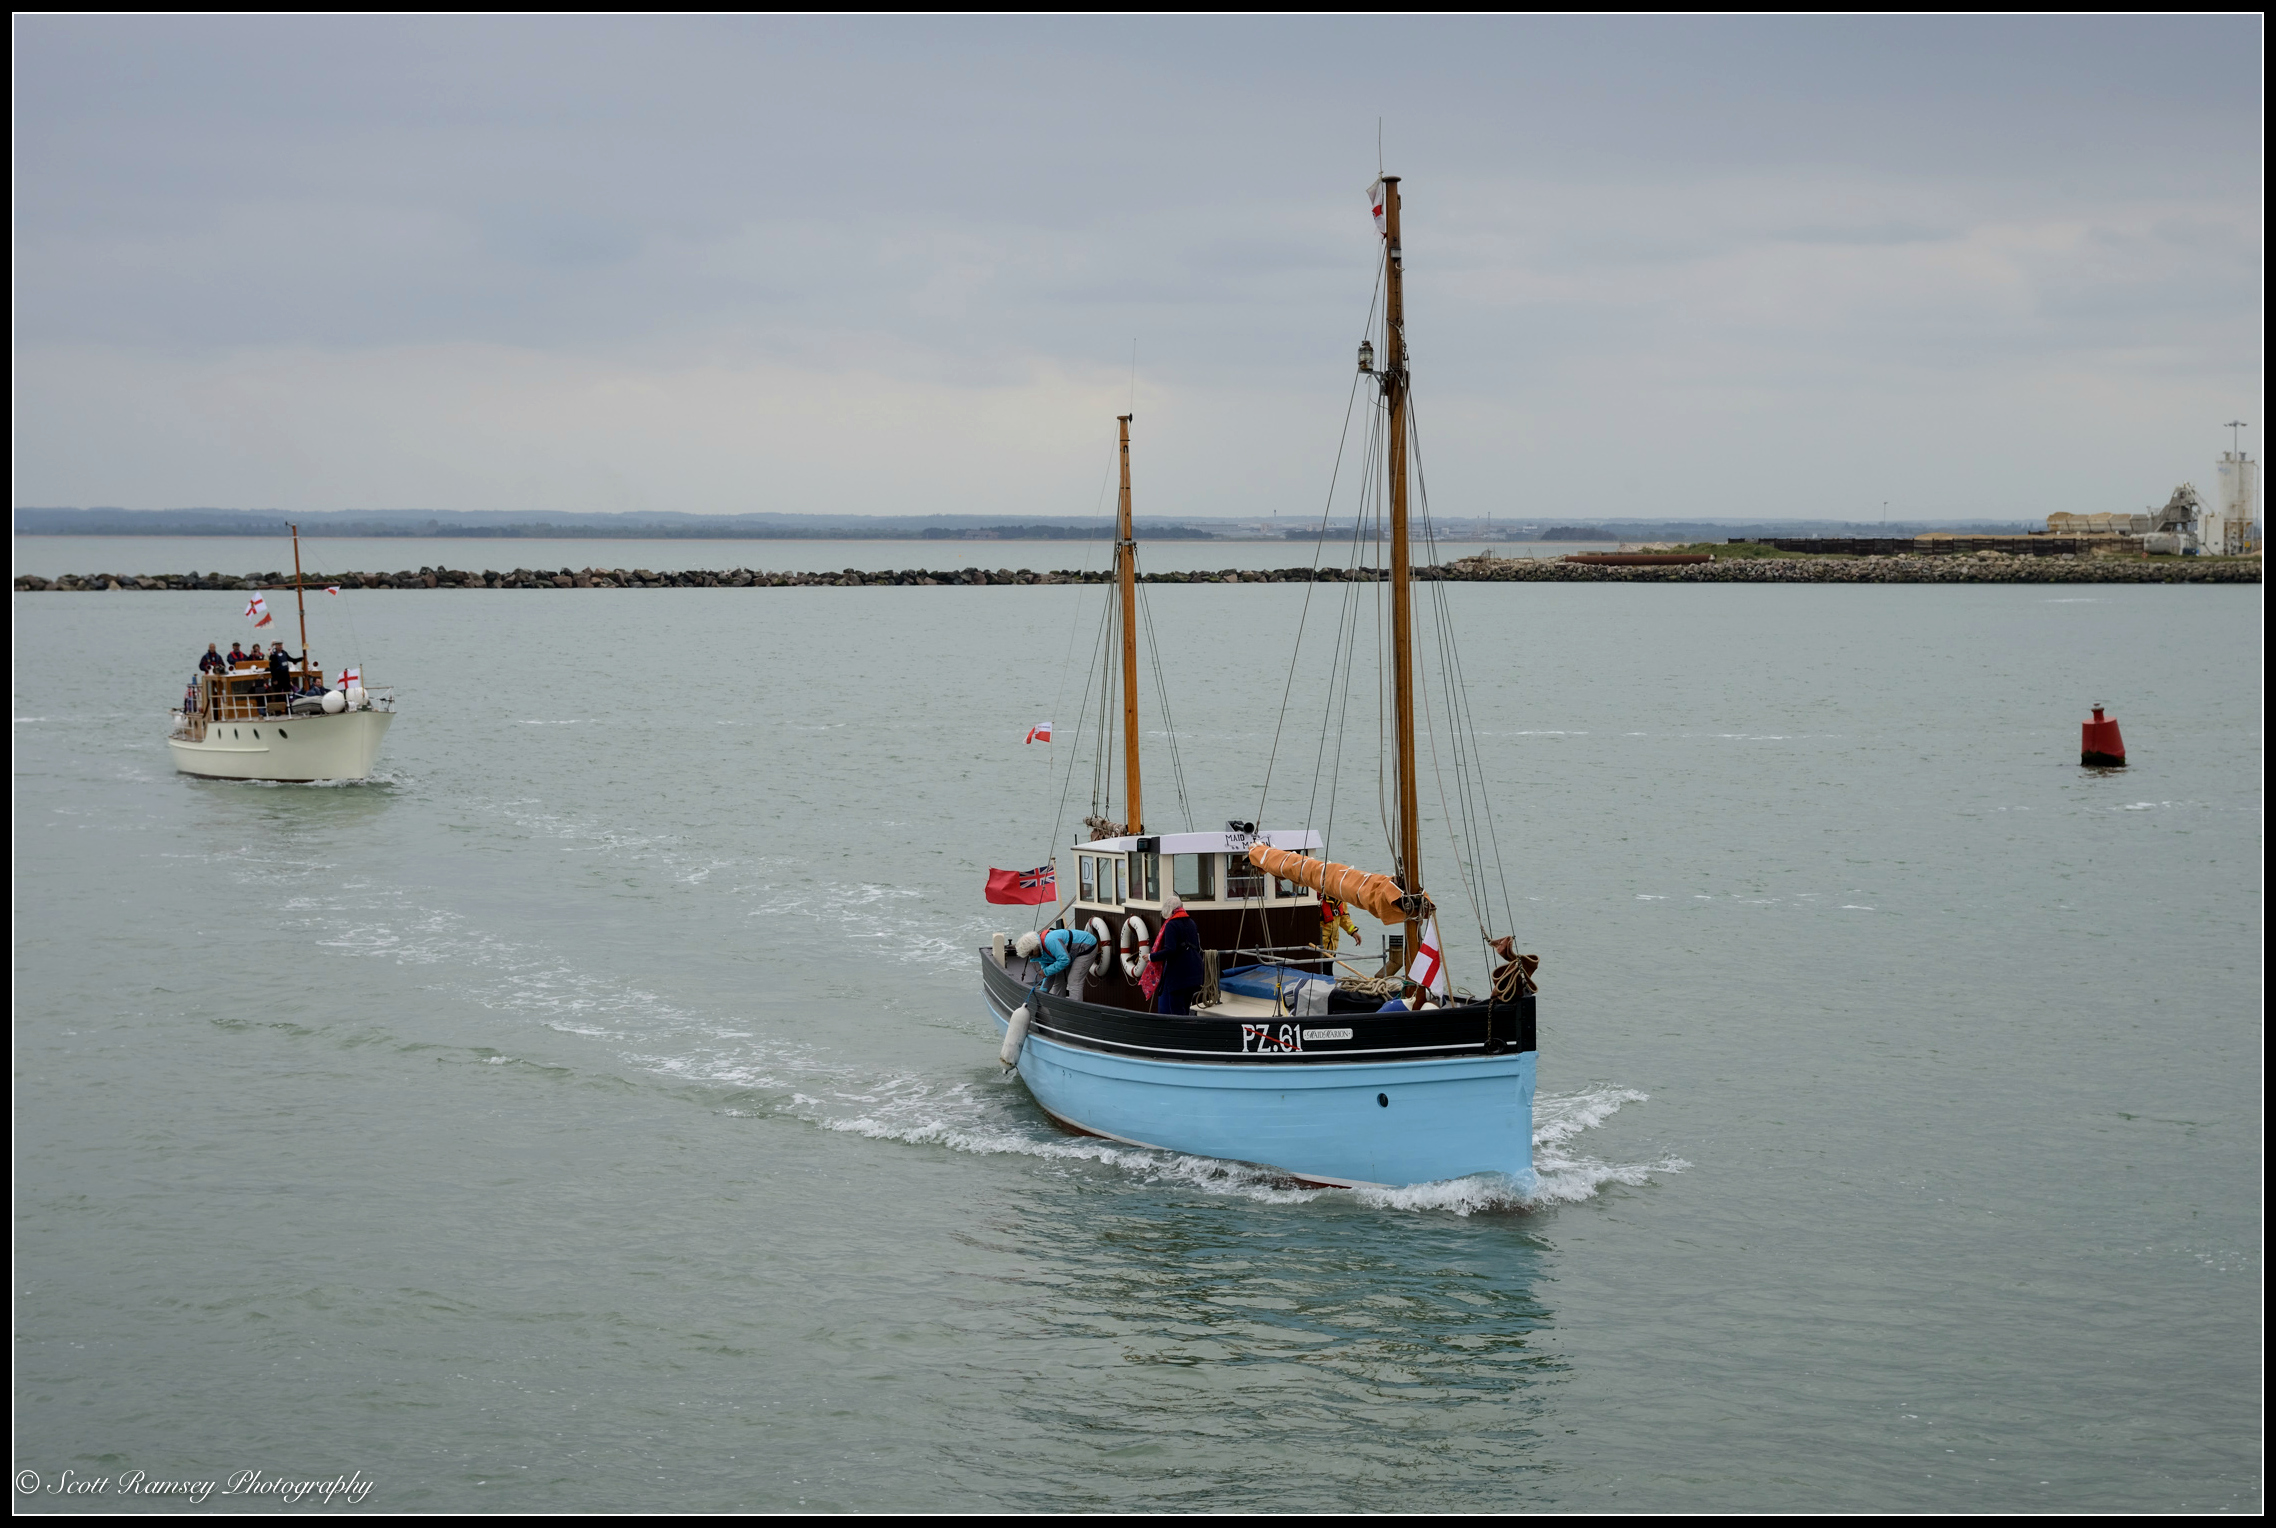 The Maid Marion, a 1925 Cornish luggerand one of the original Dunkirk Little Ships, returns to the Royal Harbour Marina Ramsgate during a weekend of events to commemorate the 75th anniversary of Operation Dynamo. ©Scott Ramsey Photography